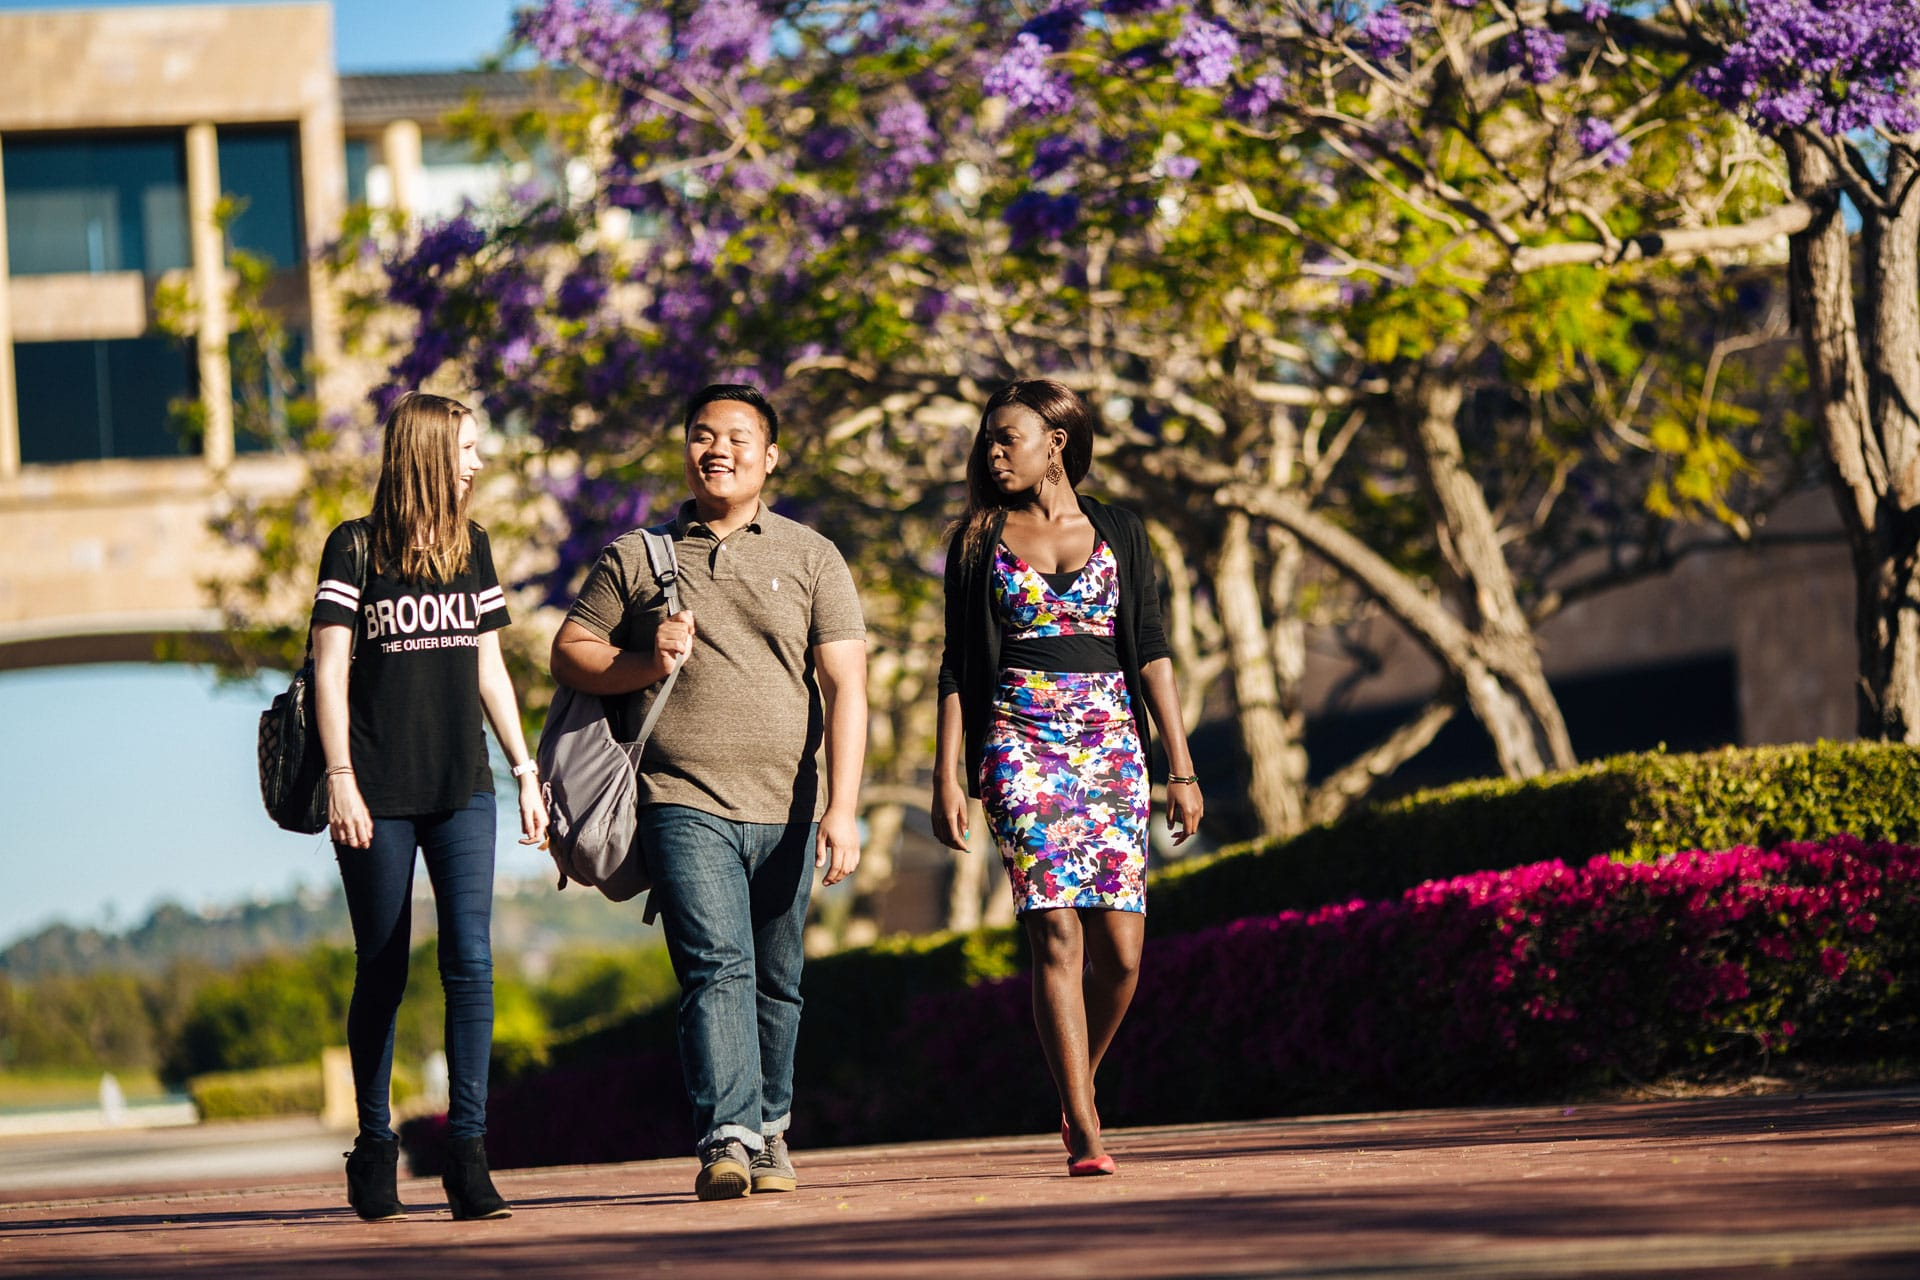 bond university gold coast universitet med hög ranking australien